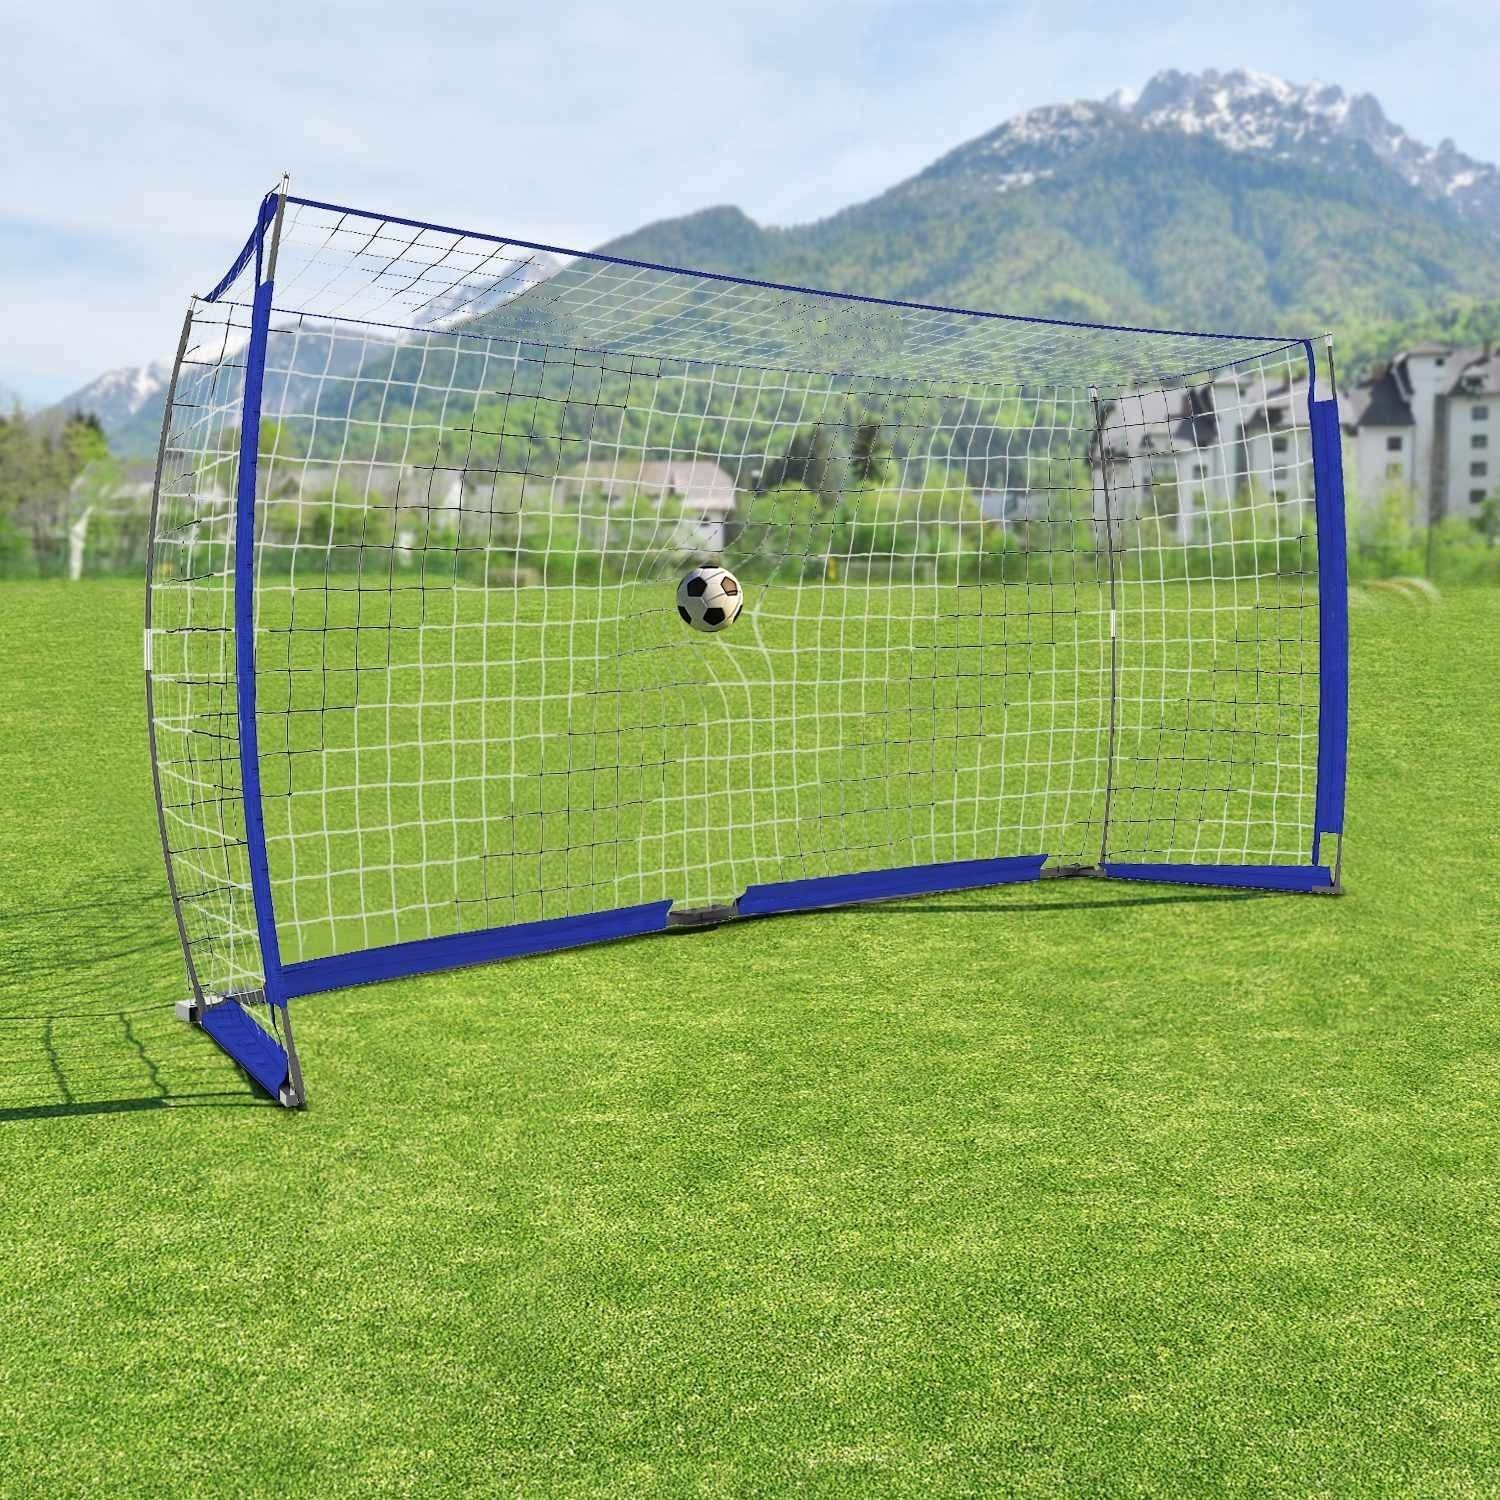 629f41563 Get Quotations · dtemple 12 x 6 ft Sports Foldable Portable Soccer Goal Net  with Bow Frame and Carry